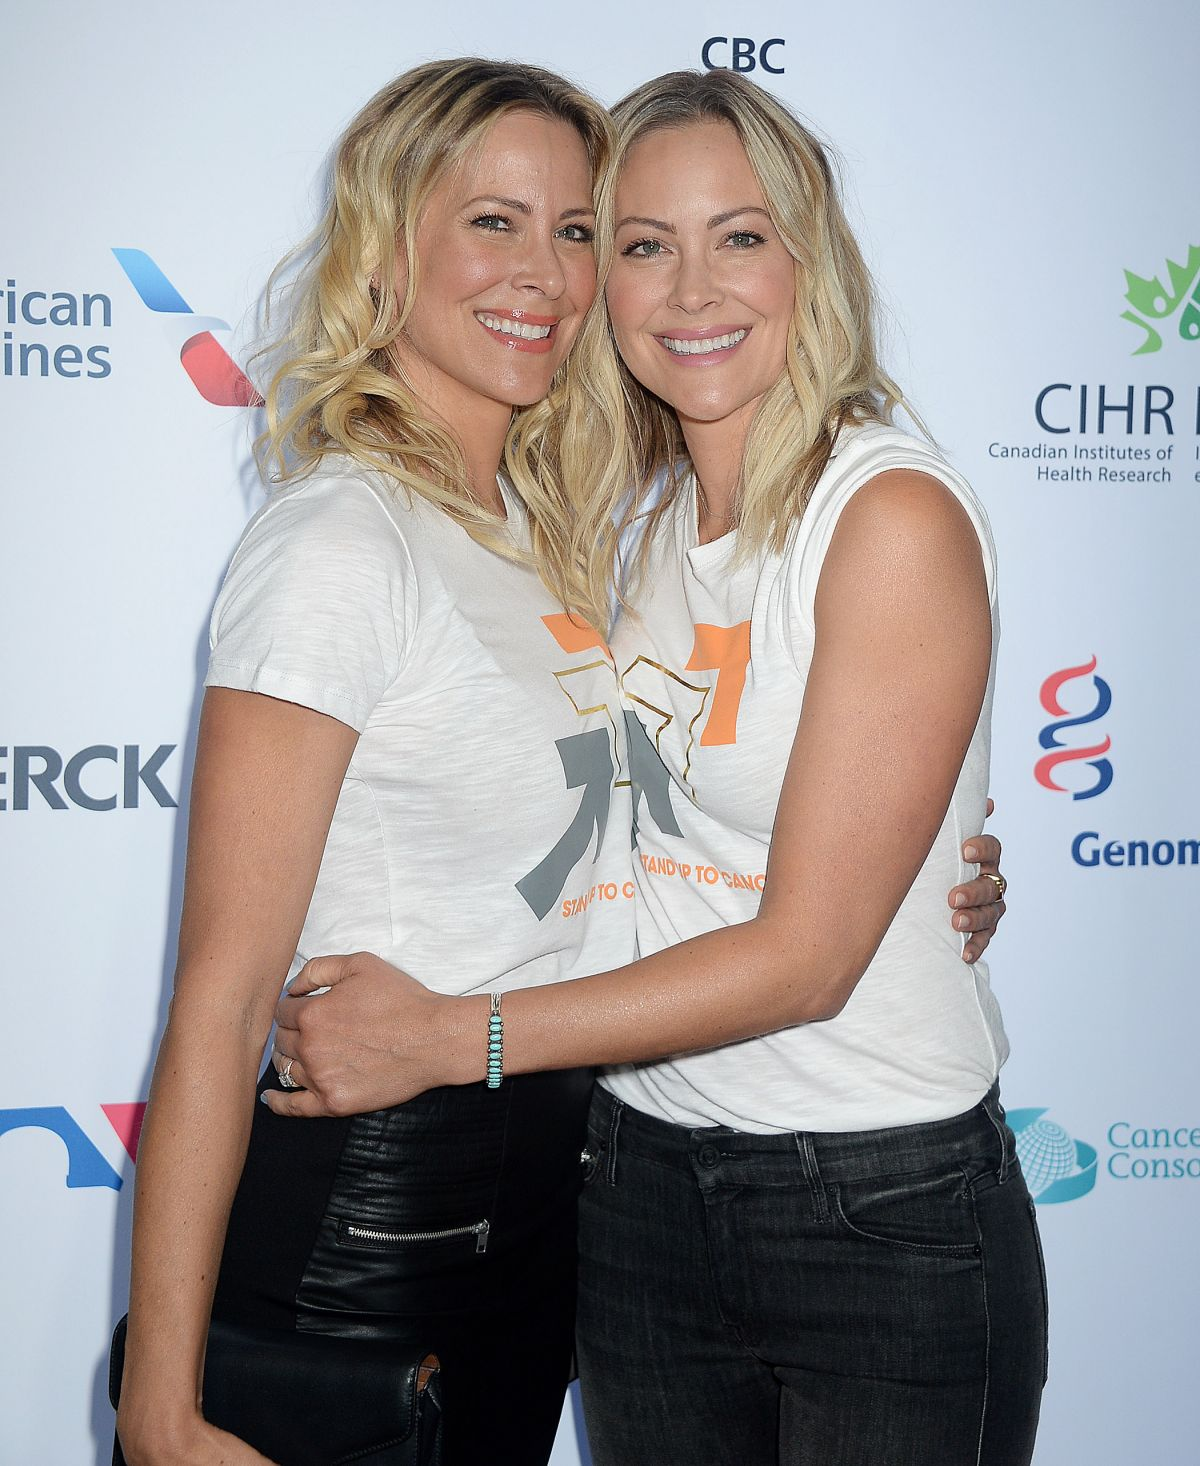 Brittany Daniel & Cynthia Daniel Snow At 5th Biennial Stand Up To Cancer, Los Angeles